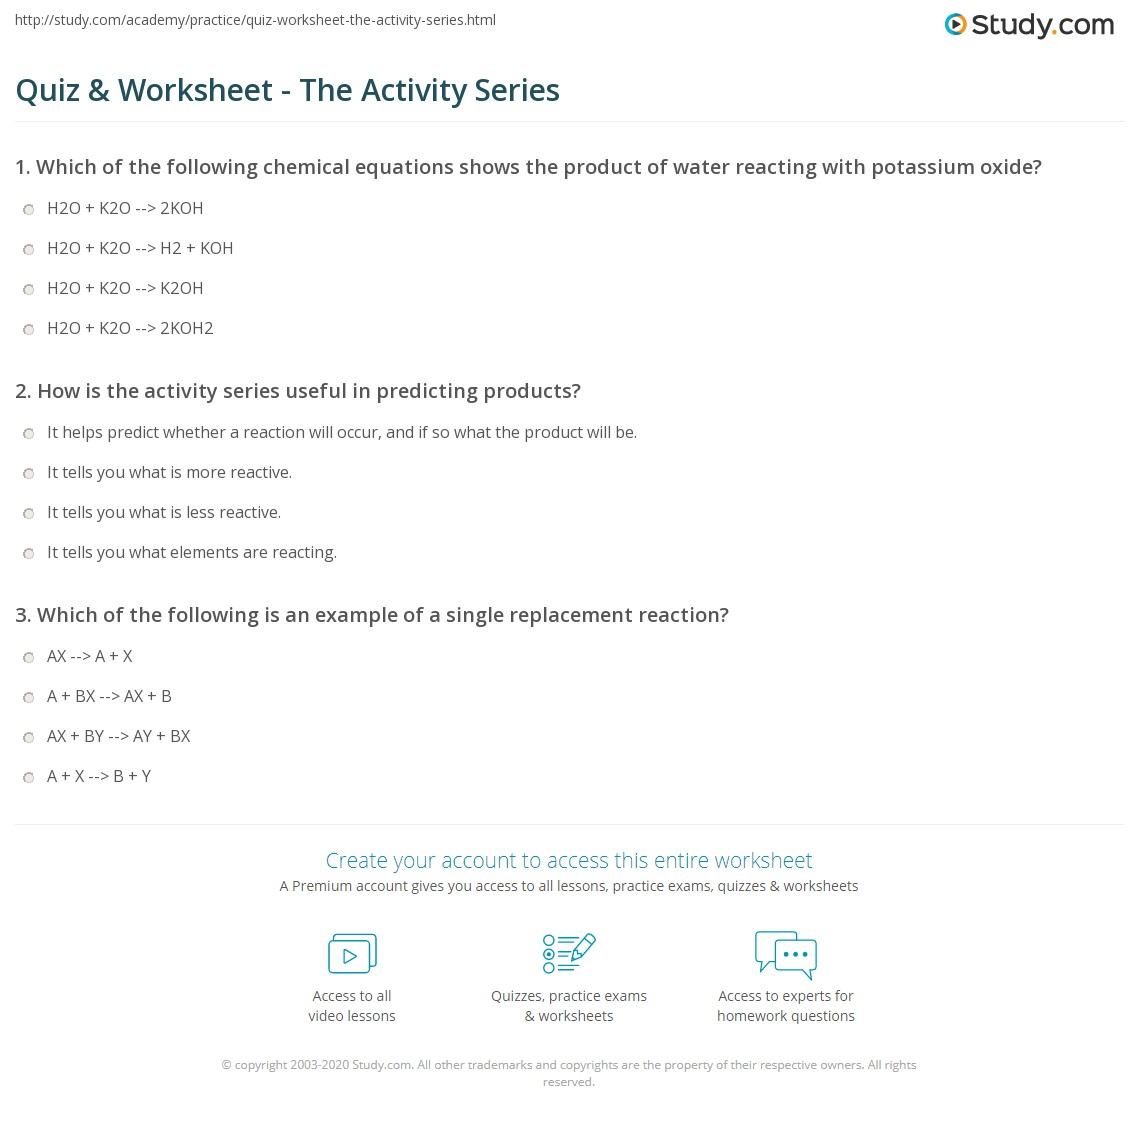 Aldiablosus  Picturesque Quiz Amp Worksheet  The Activity Series  Studycom With Fair Print The Activity Series Predicting Products Of Single Displacement Reactions Worksheet With Adorable Free Division Worksheets For Rd Grade Also Word Web Worksheet In Addition Farm Animals For Kids Worksheets And Sqr Worksheets As Well As Health Goal Setting Worksheet Additionally Number  Worksheets For Preschool From Studycom With Aldiablosus  Fair Quiz Amp Worksheet  The Activity Series  Studycom With Adorable Print The Activity Series Predicting Products Of Single Displacement Reactions Worksheet And Picturesque Free Division Worksheets For Rd Grade Also Word Web Worksheet In Addition Farm Animals For Kids Worksheets From Studycom